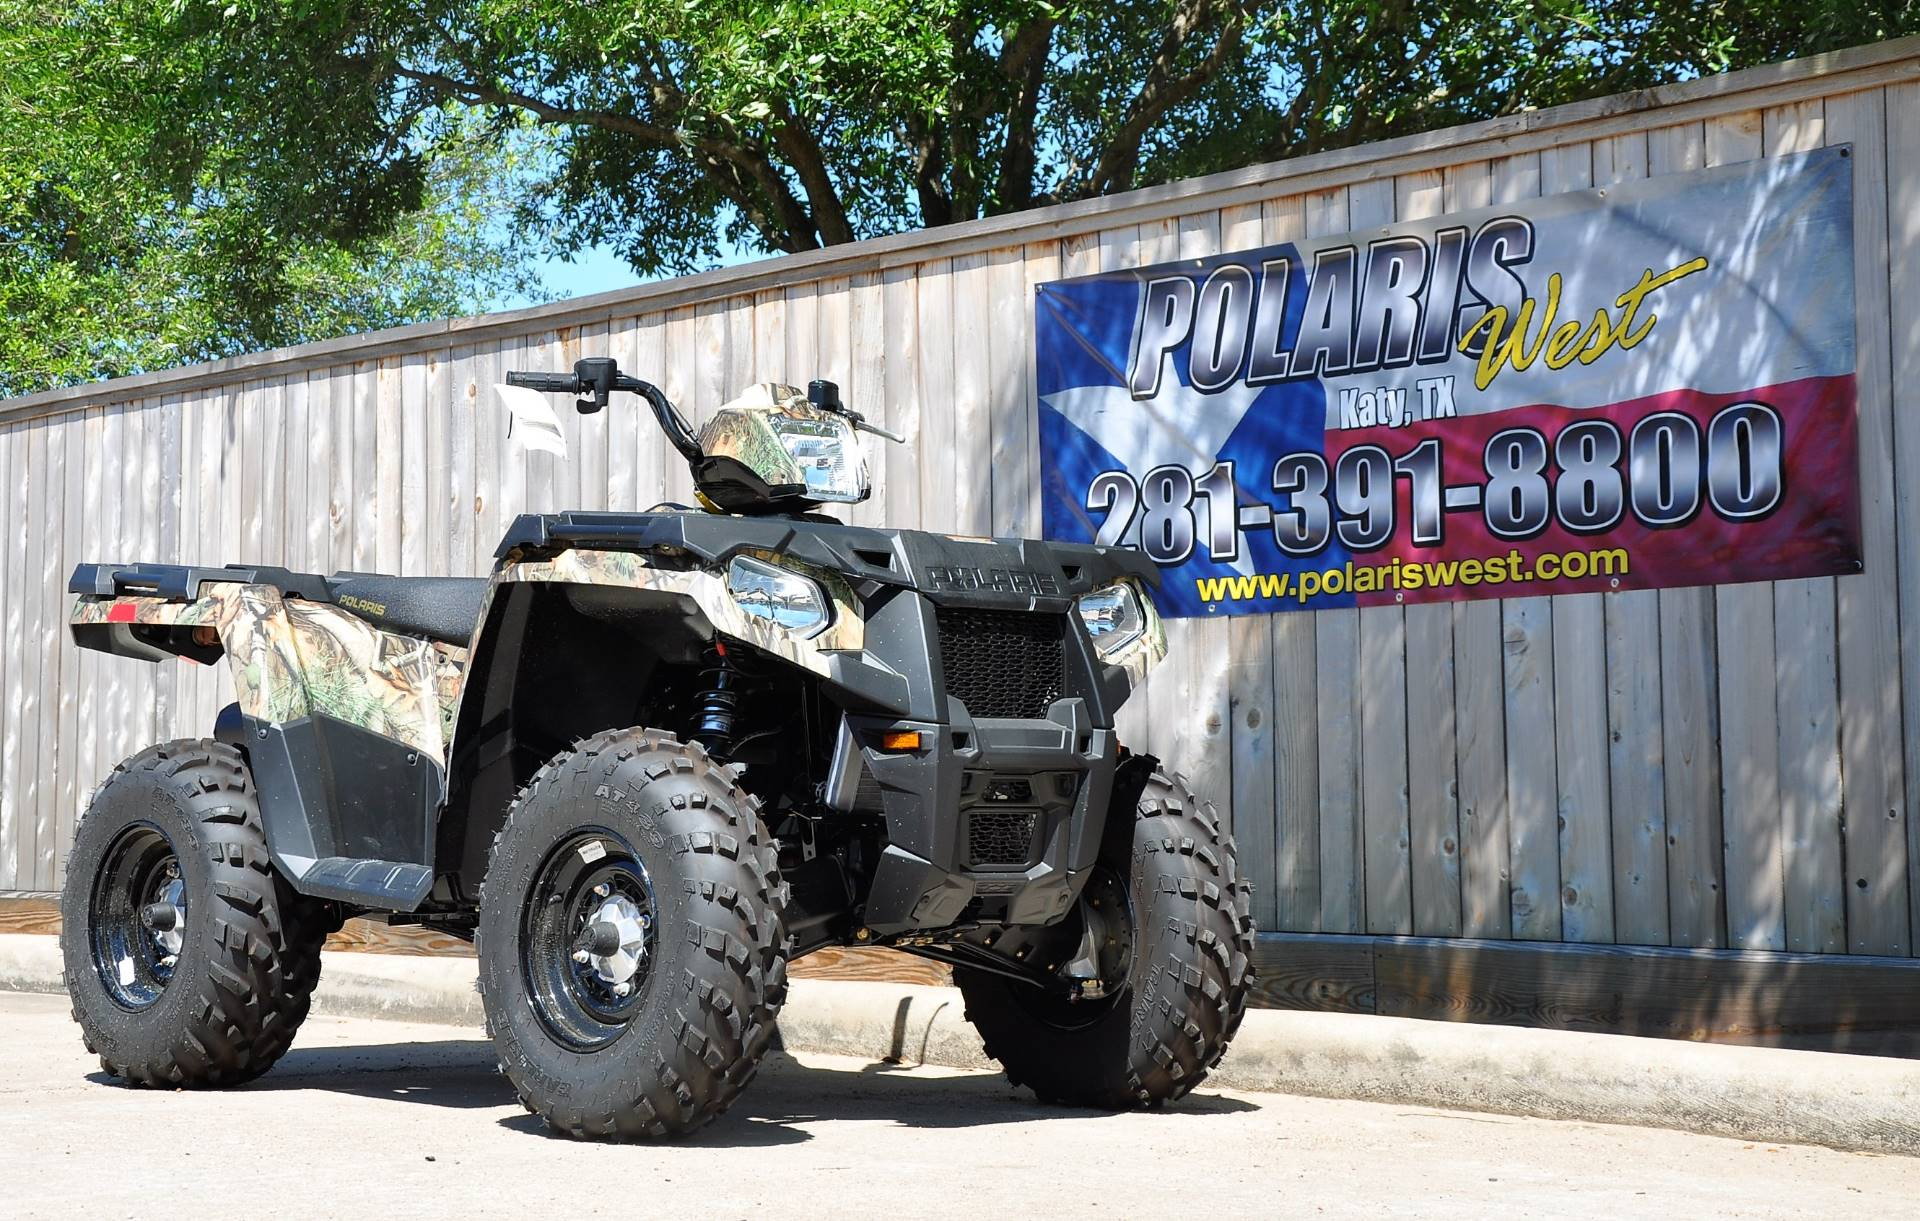 2019 Polaris Sportsman 570 Camo 2